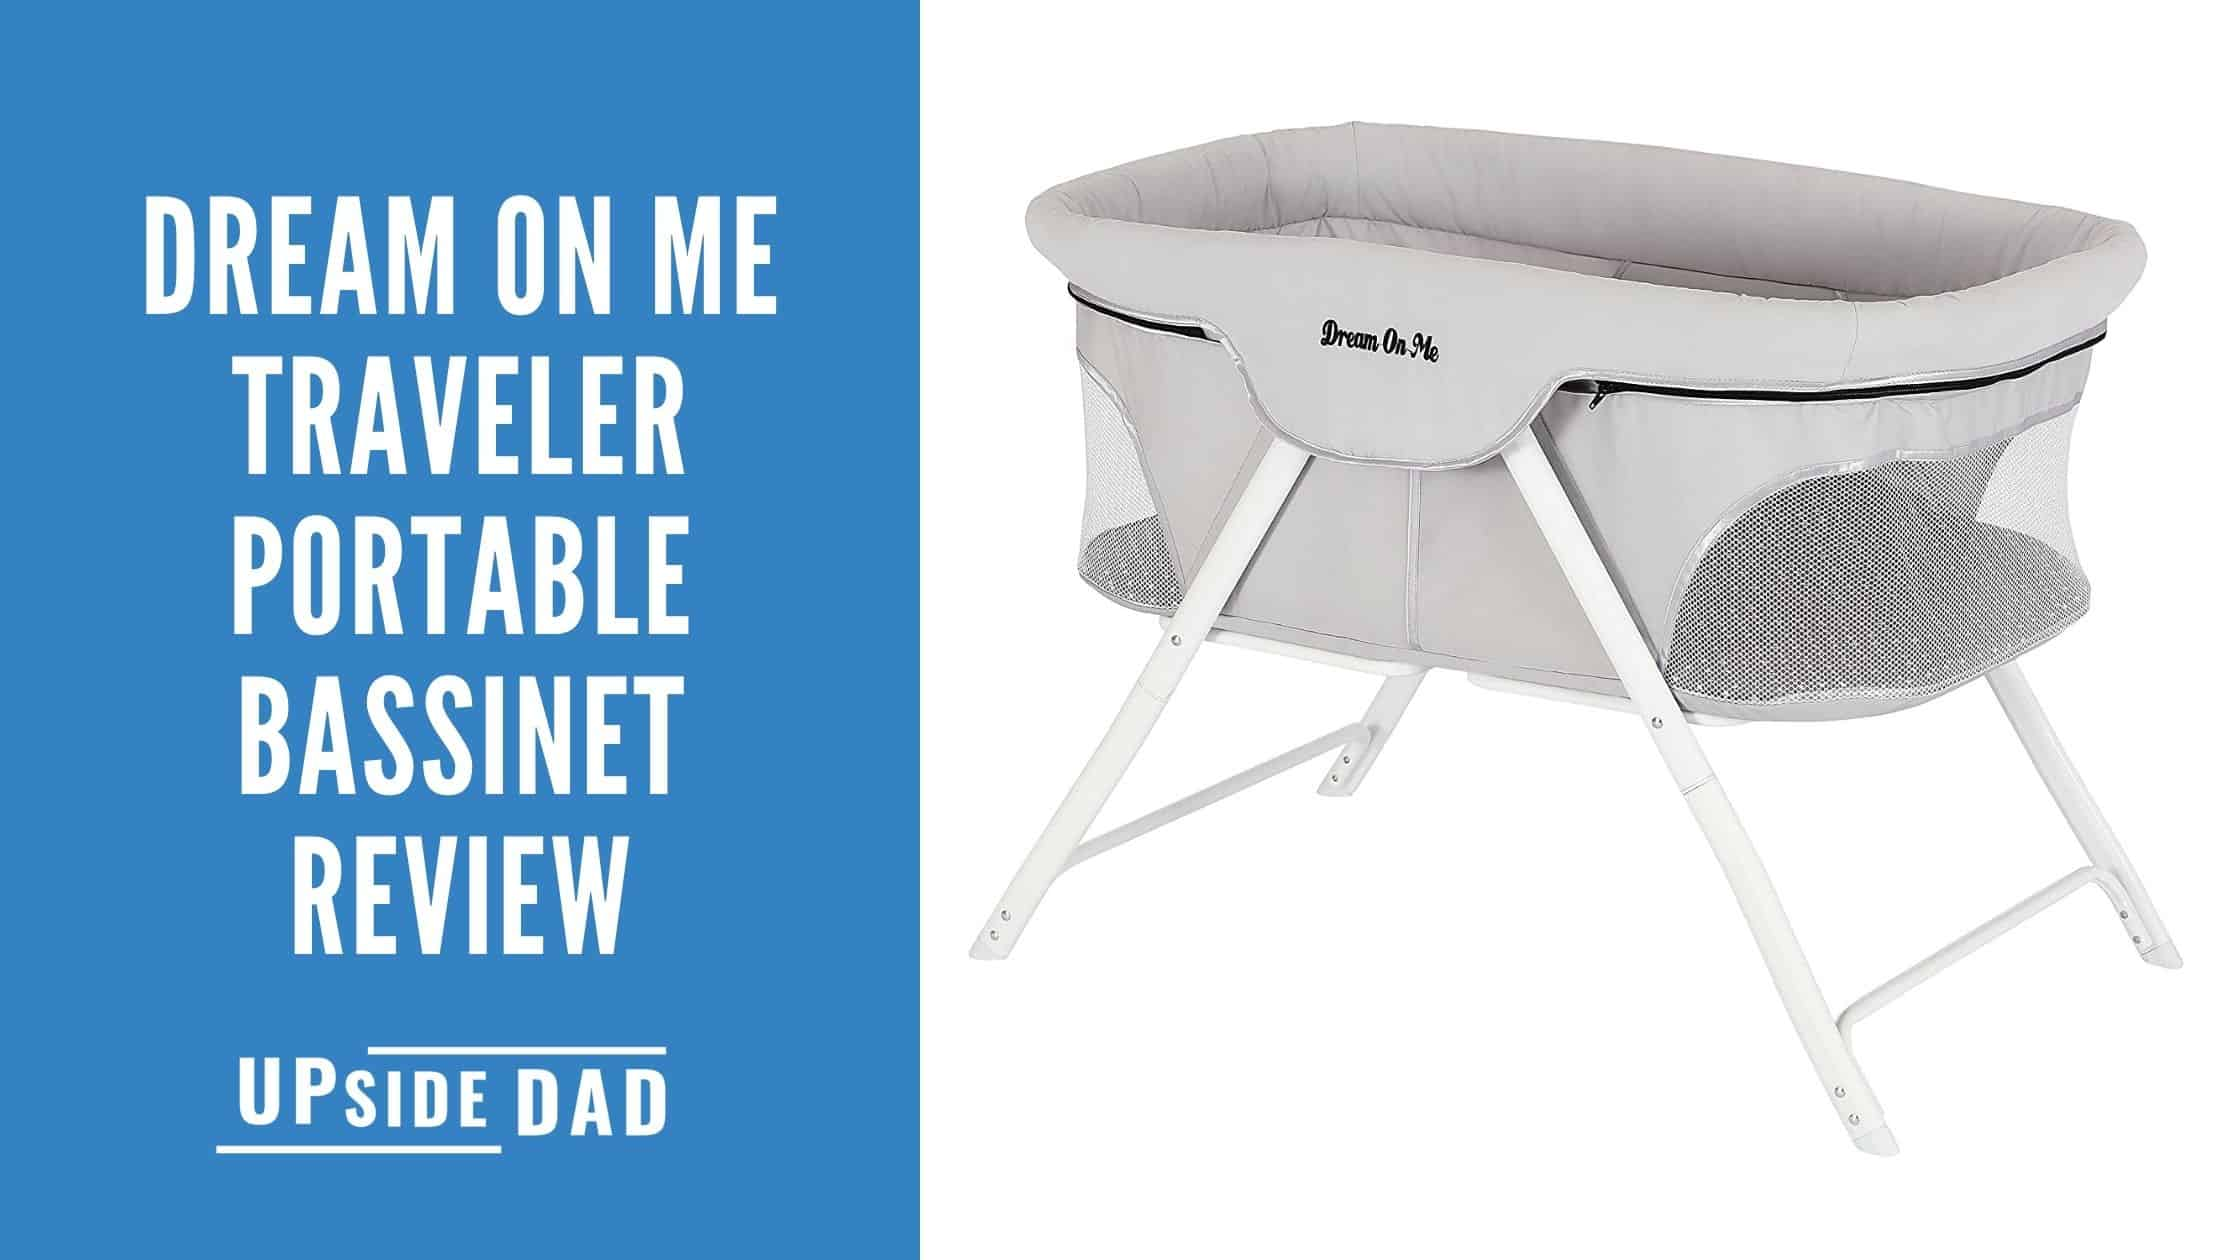 Dream On Me Traveler Portable Bassinet review